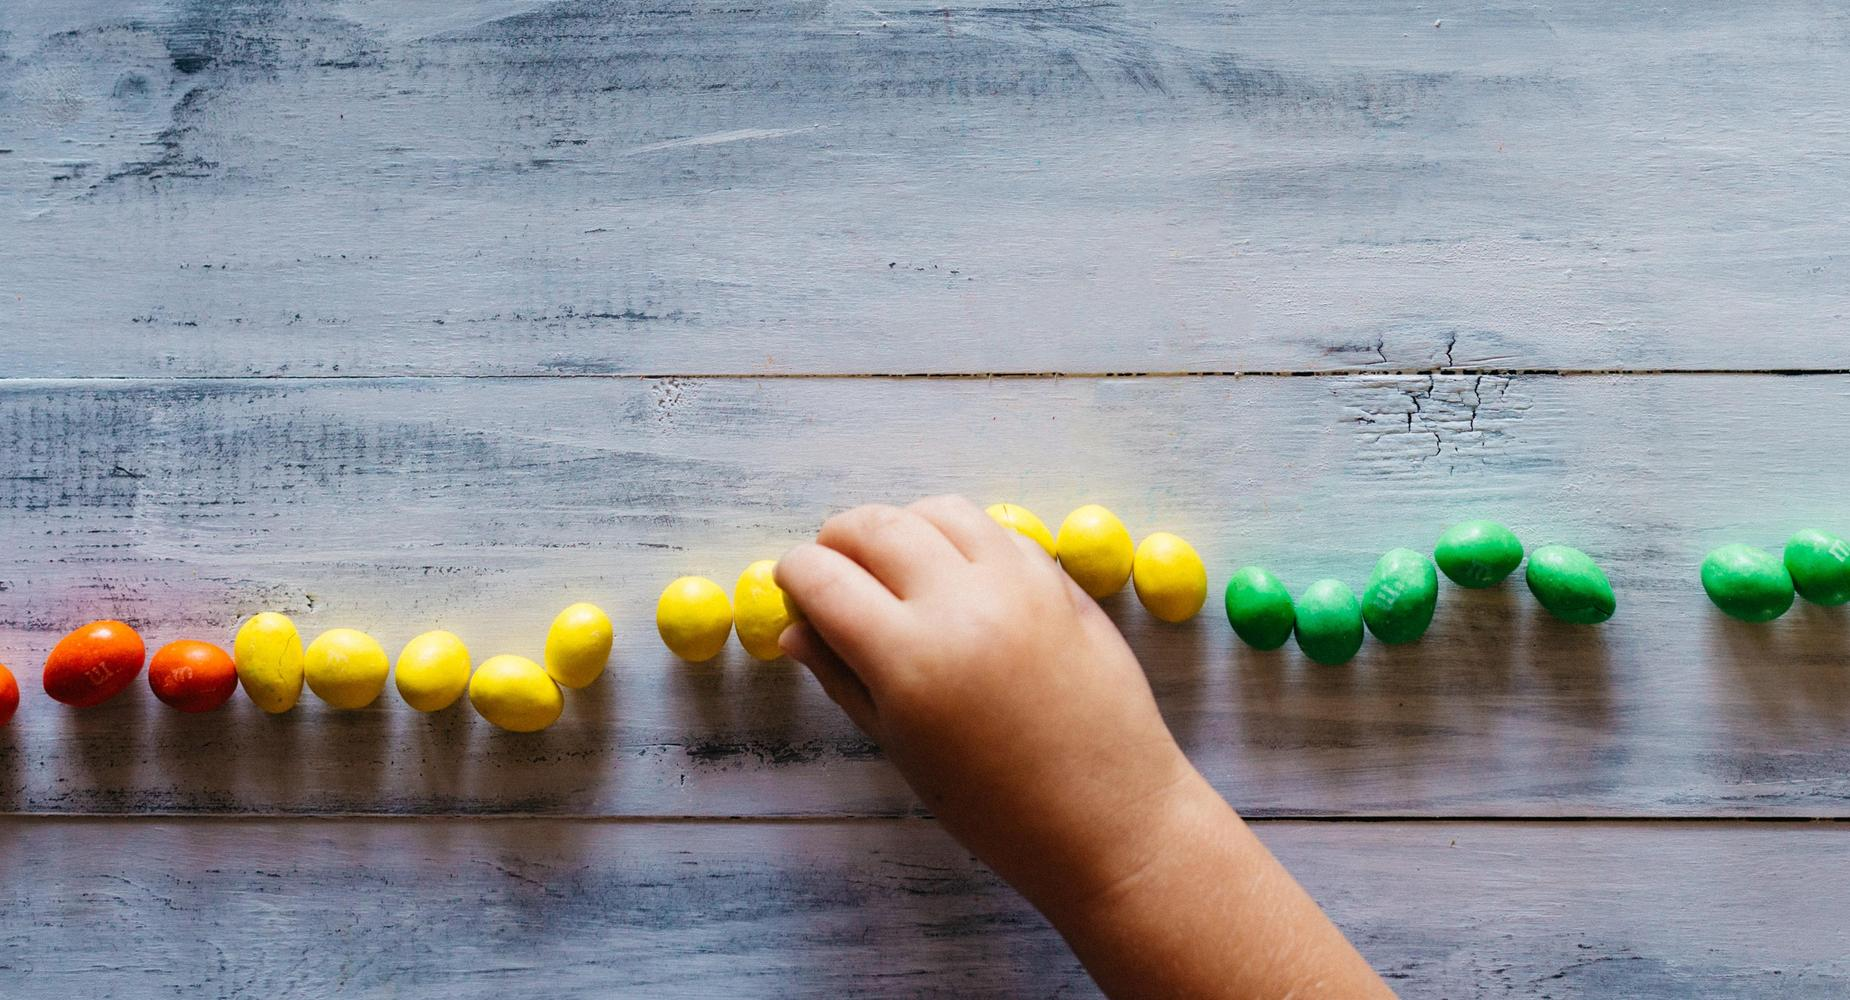 a child's hand sorts peanut m&m's by color on a wooden table